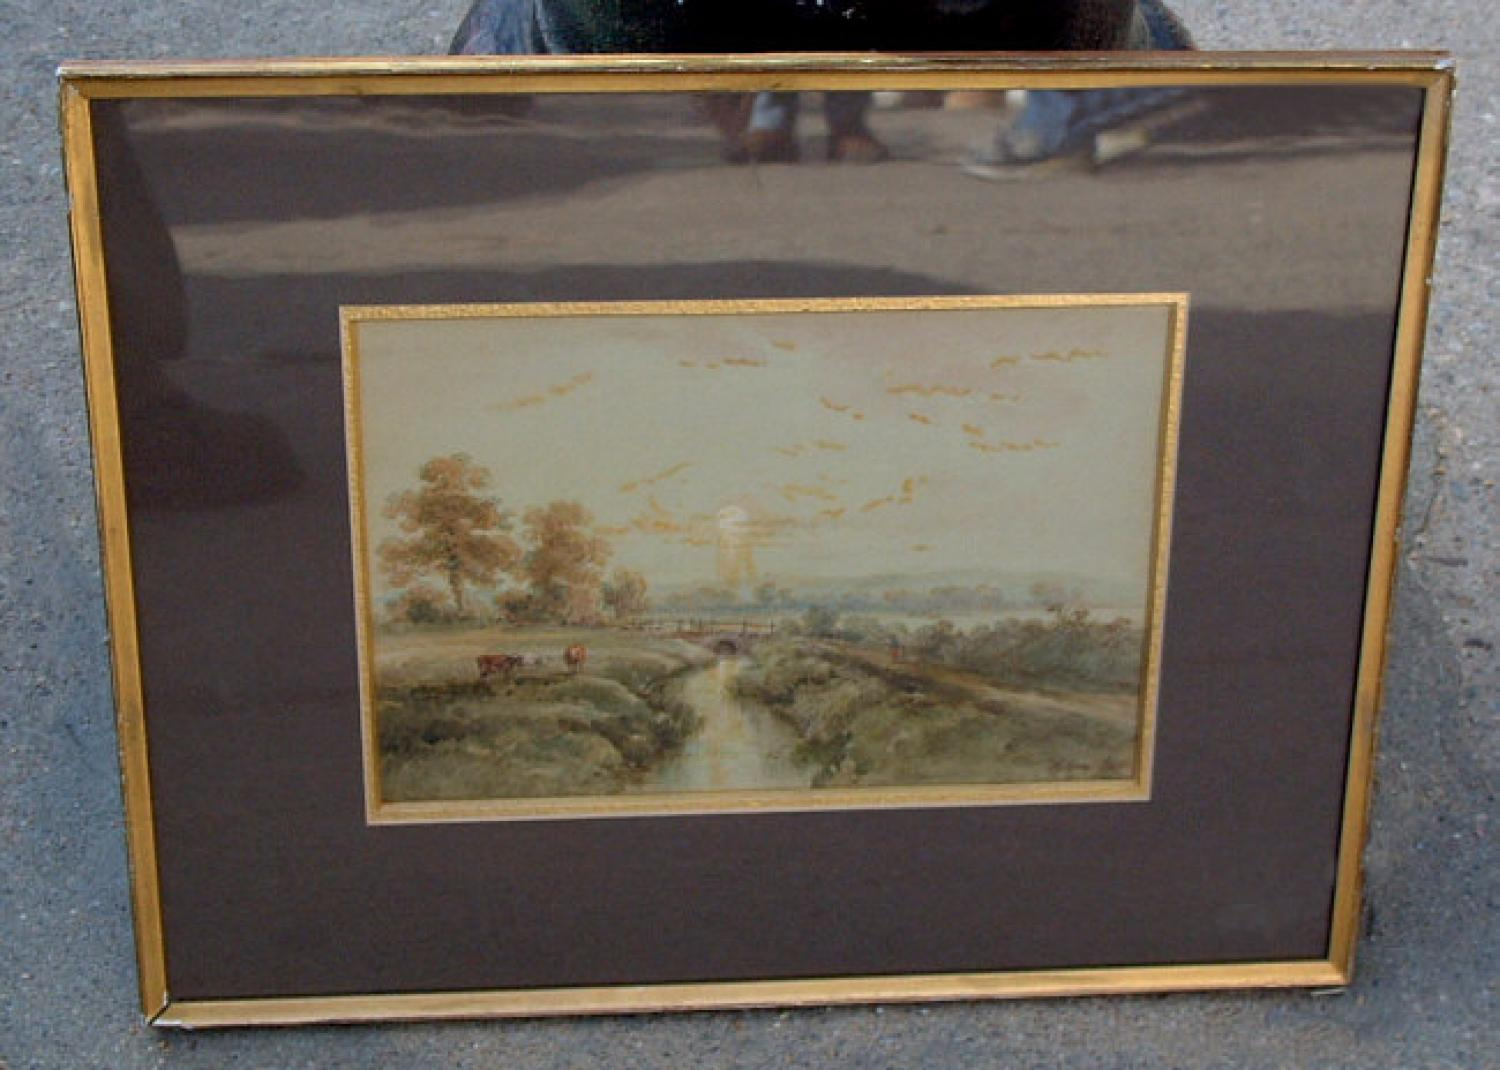 English watercolor landscape by Henry Simpson